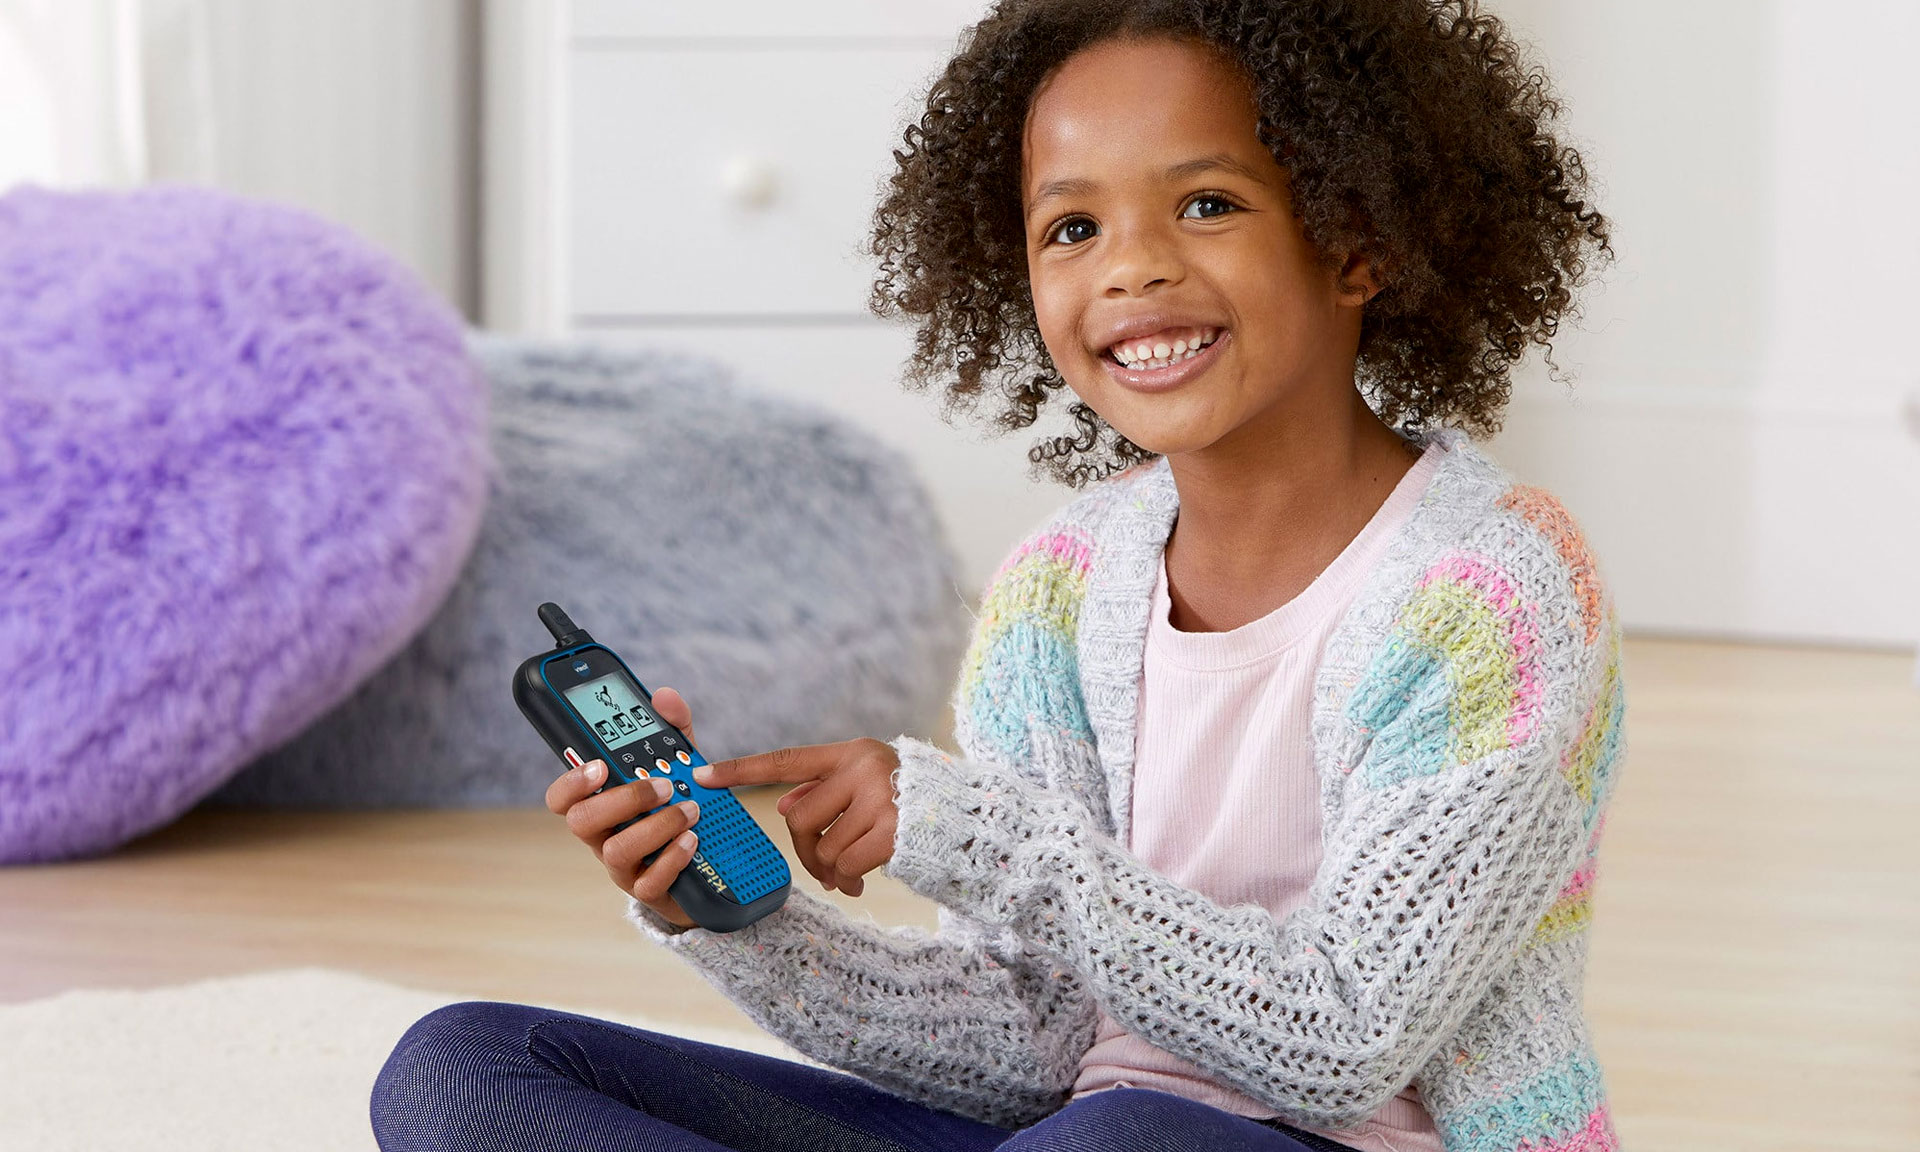 Kids' karaoke machines and smart toys from Mattel and Vtech among those found to have security flaws – Which? News